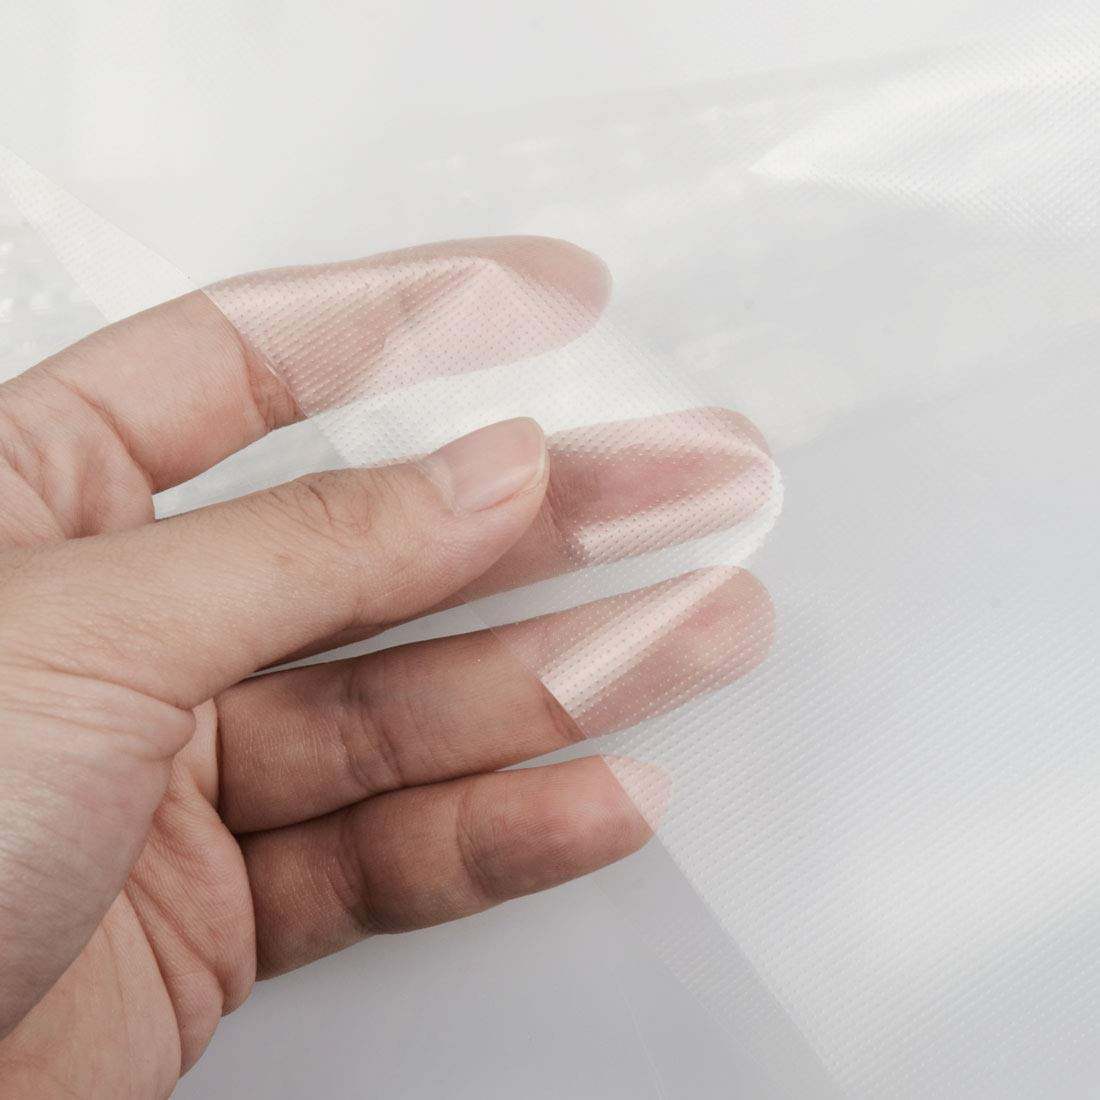 850 Sheet Protectors 11 Hole Plastic Clear Sheets Protector with 8.5 x 11 Inch 9.25 x 11.25 Inch Top Loaded US Standard Letter Size Lightweight Binder Sleeves